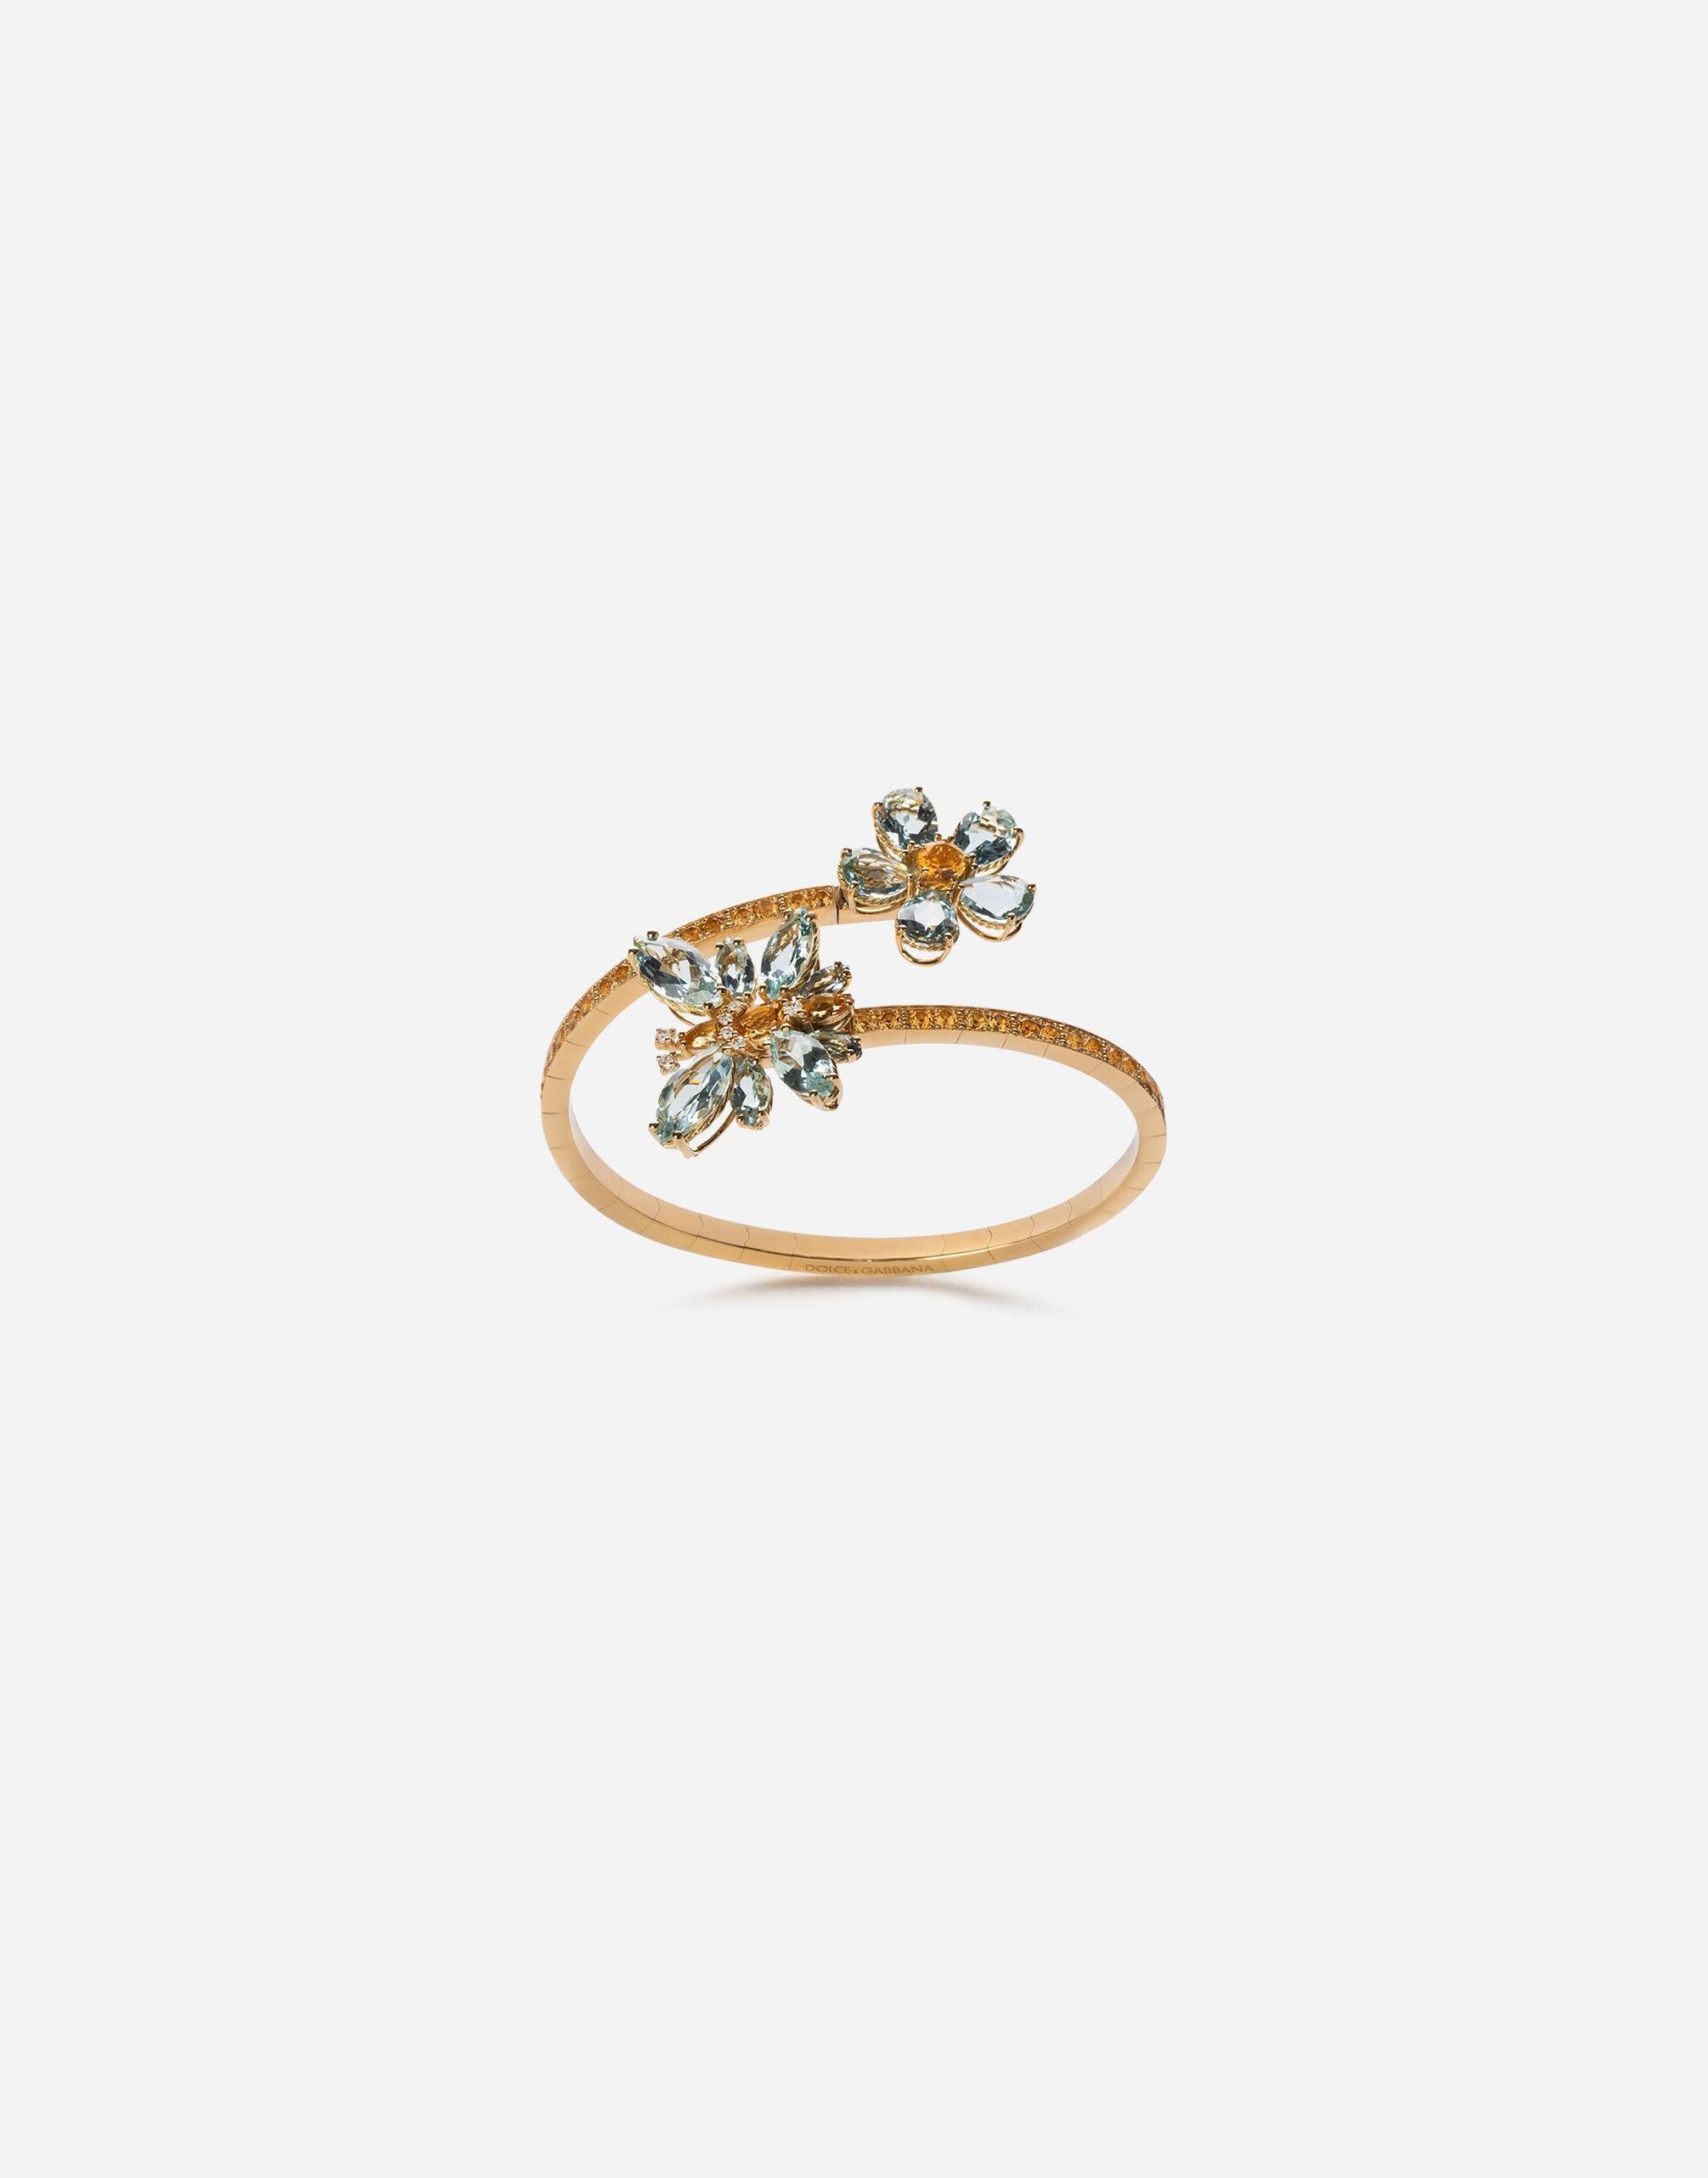 Spring yellow gold bracelet with butterfly-shaped settings and floral decoration